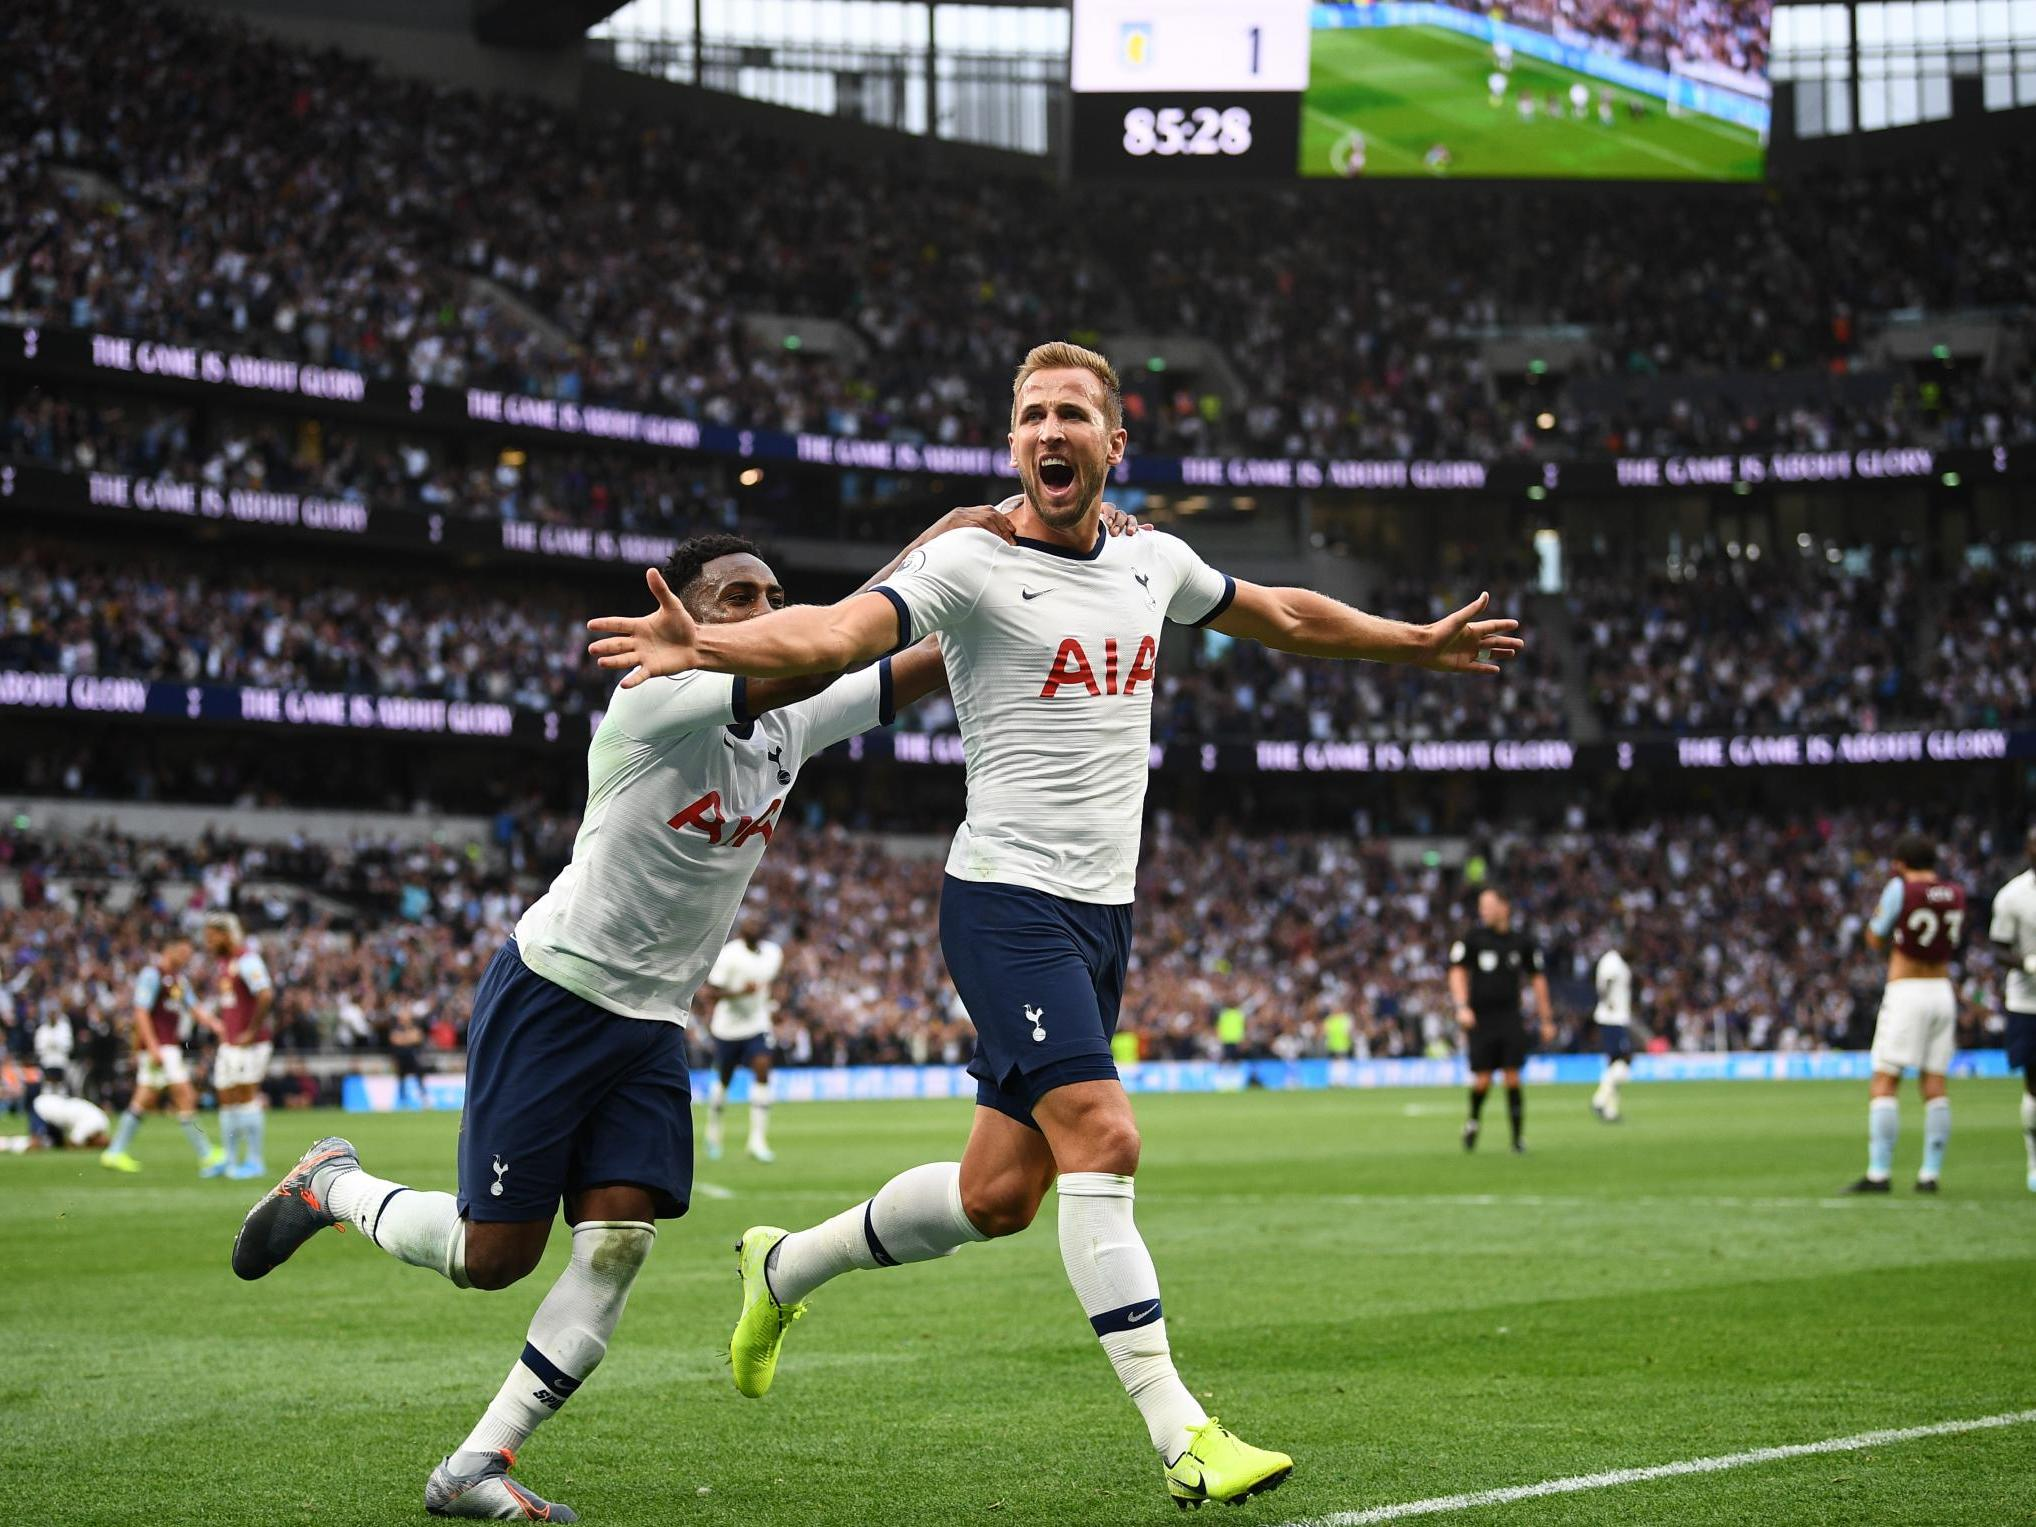 Premier League top scorers 2019/20: Harry Kane, Mohamed Salah and more battle for prize